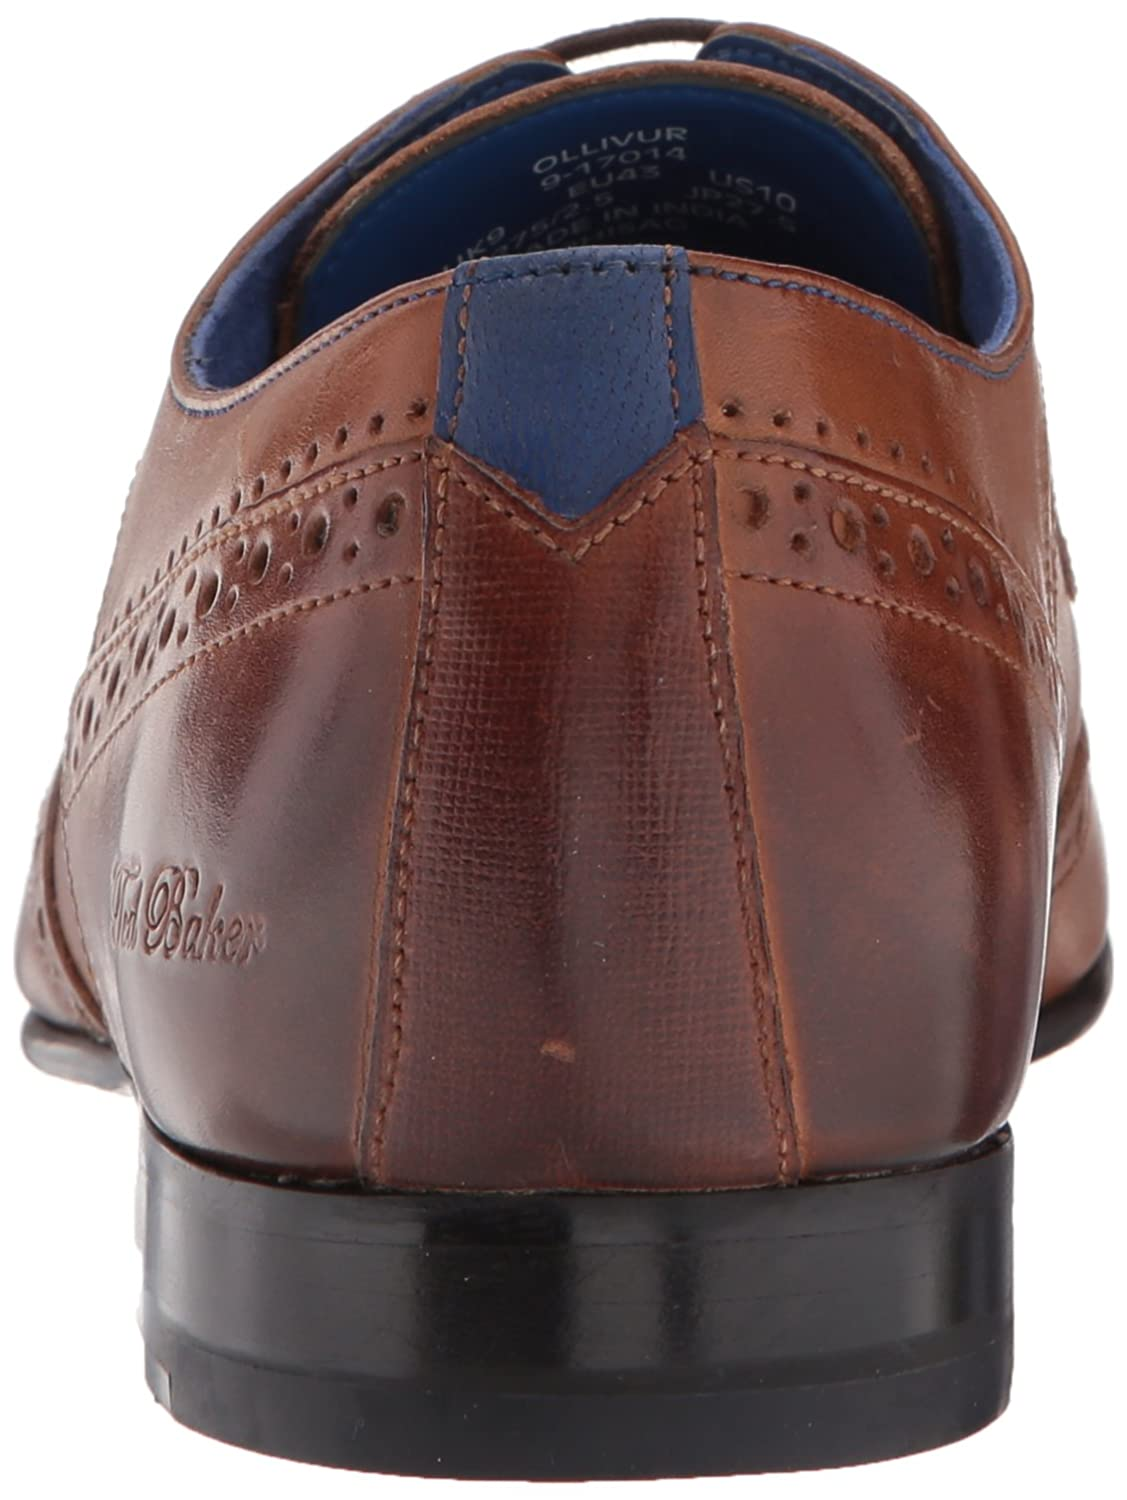 d530c7c423280a Amazon.com  Ted Baker Men s Ollivur Oxford  Shoes